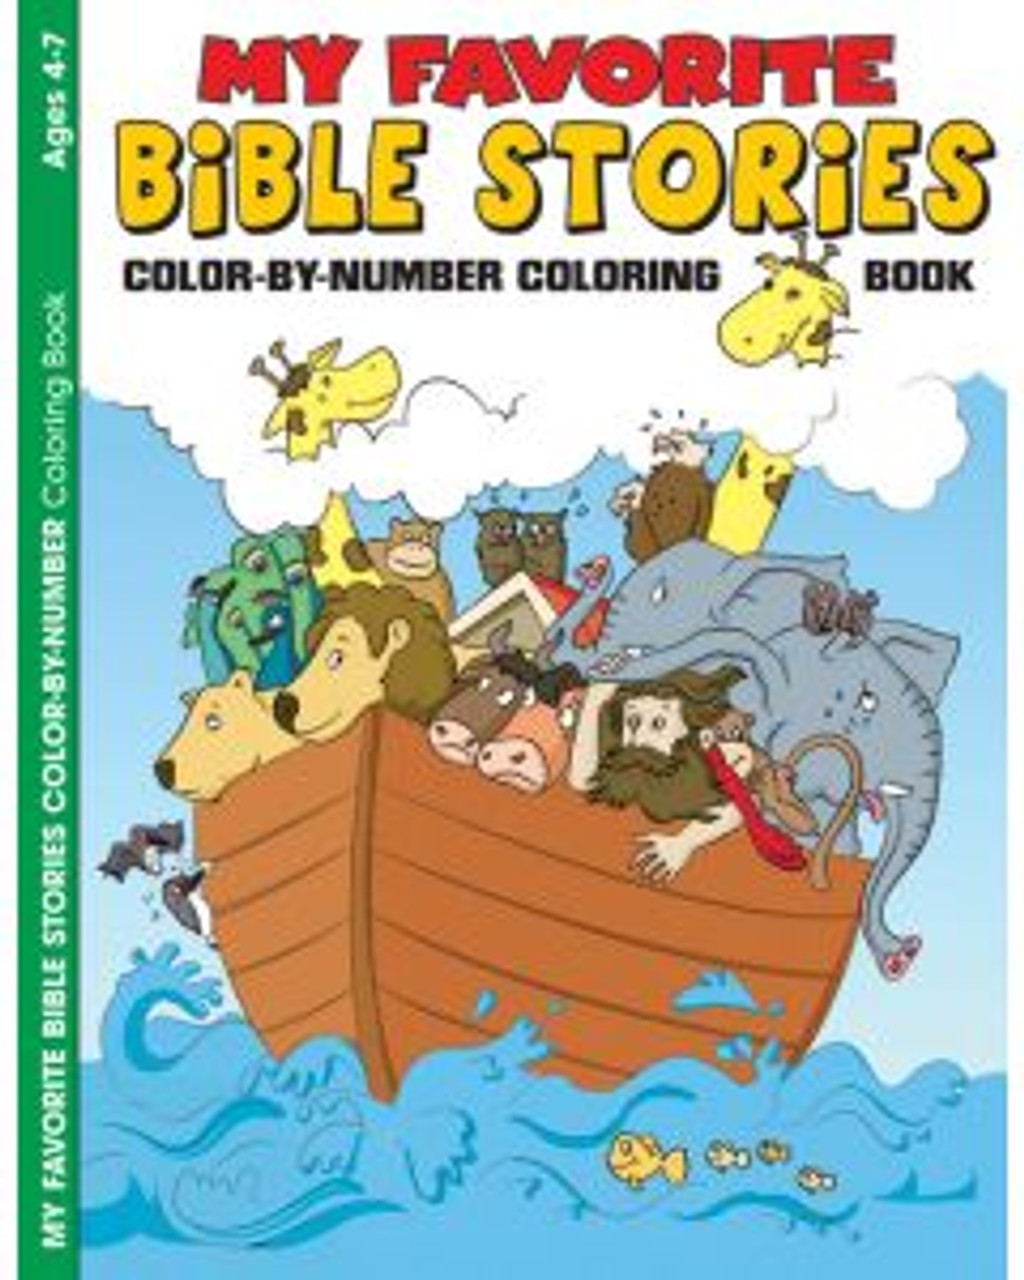 My Favorite Bible Stories (coloring book)